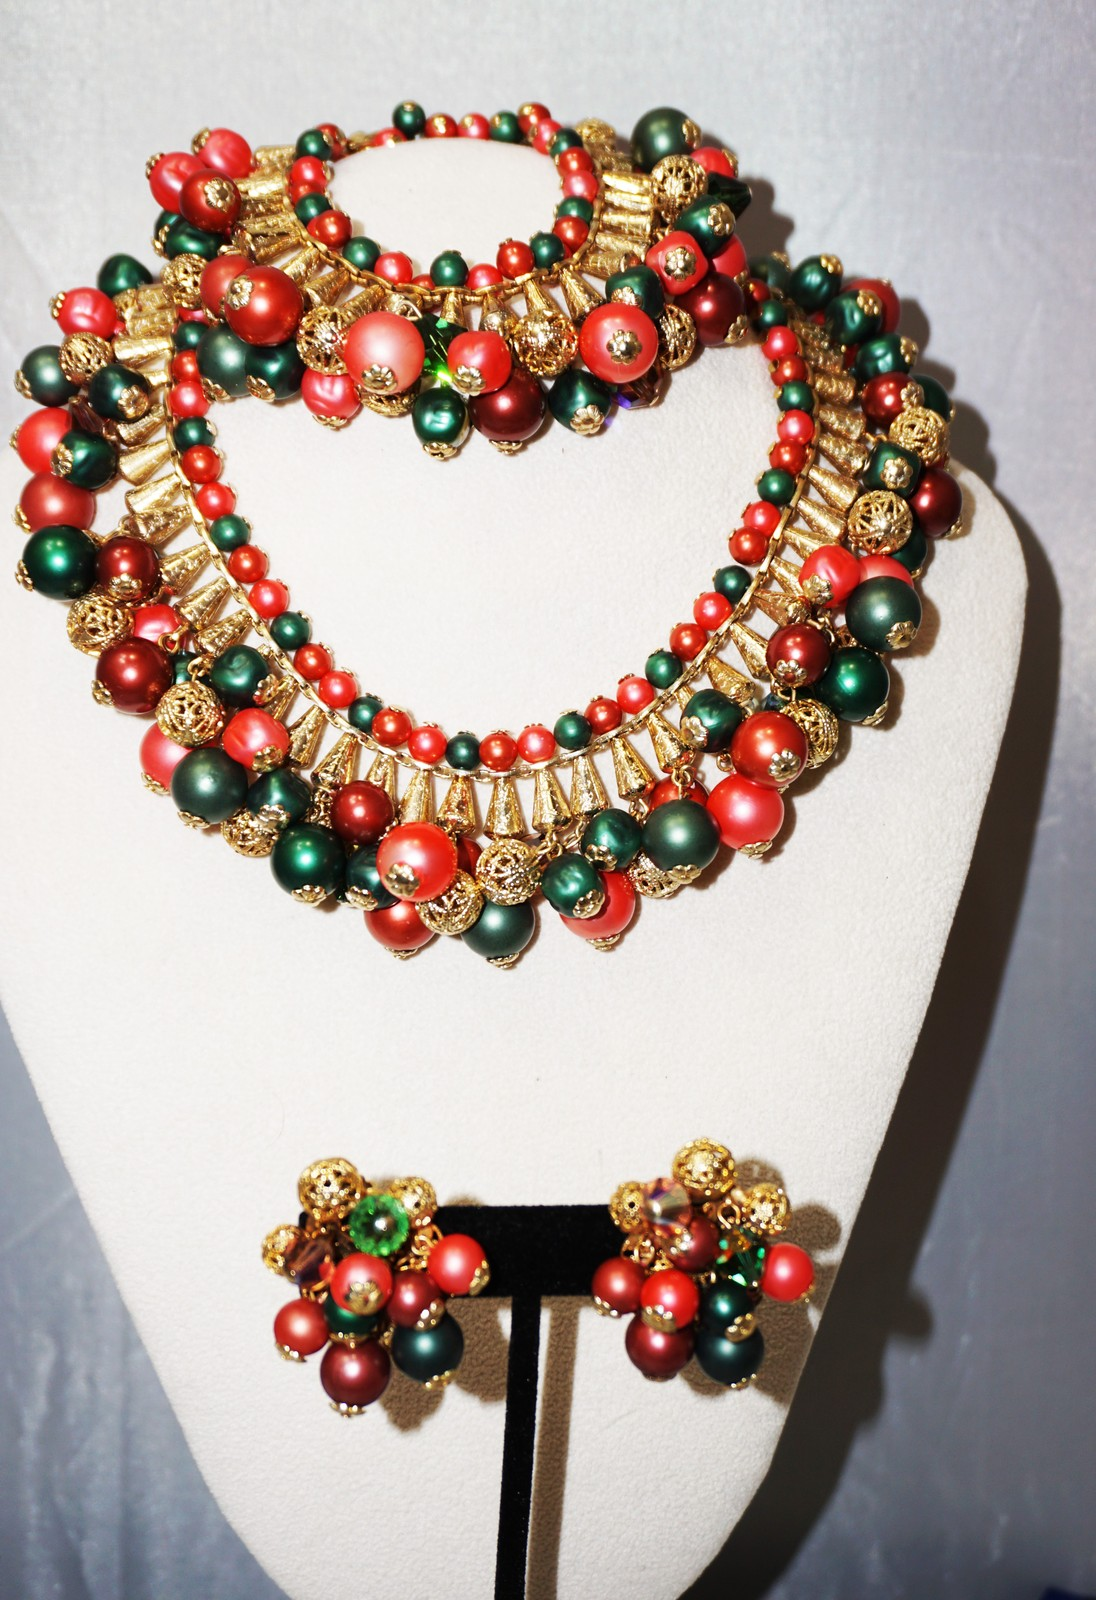 Primary image for Layered Bib Necklace Bracelet & Clip Earring Faux Pearls Pat Pending  Cha Cha